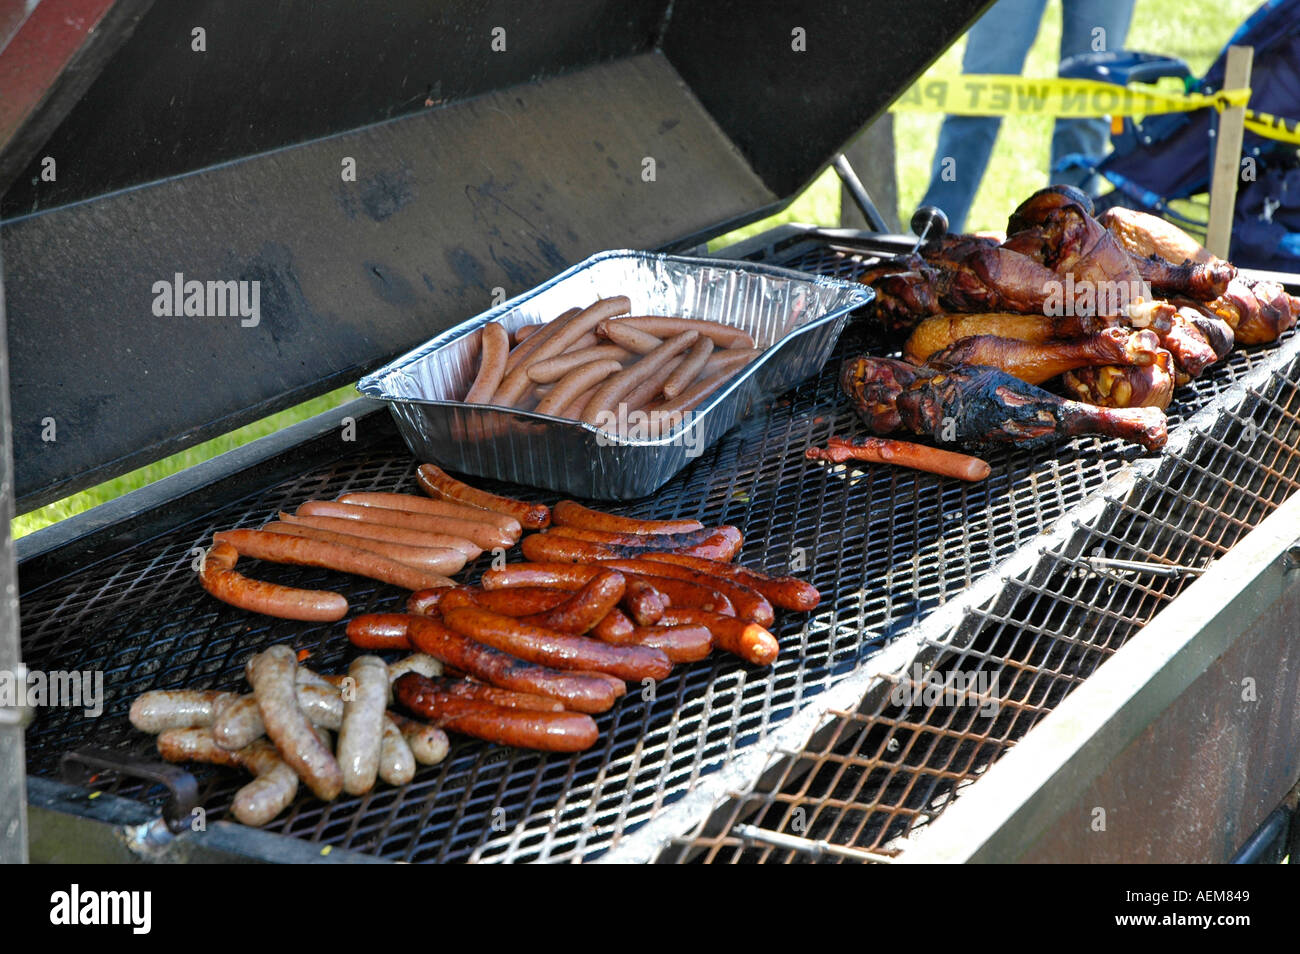 Male prepares turkey legs hamburgers and hot dogs on a large grill ...